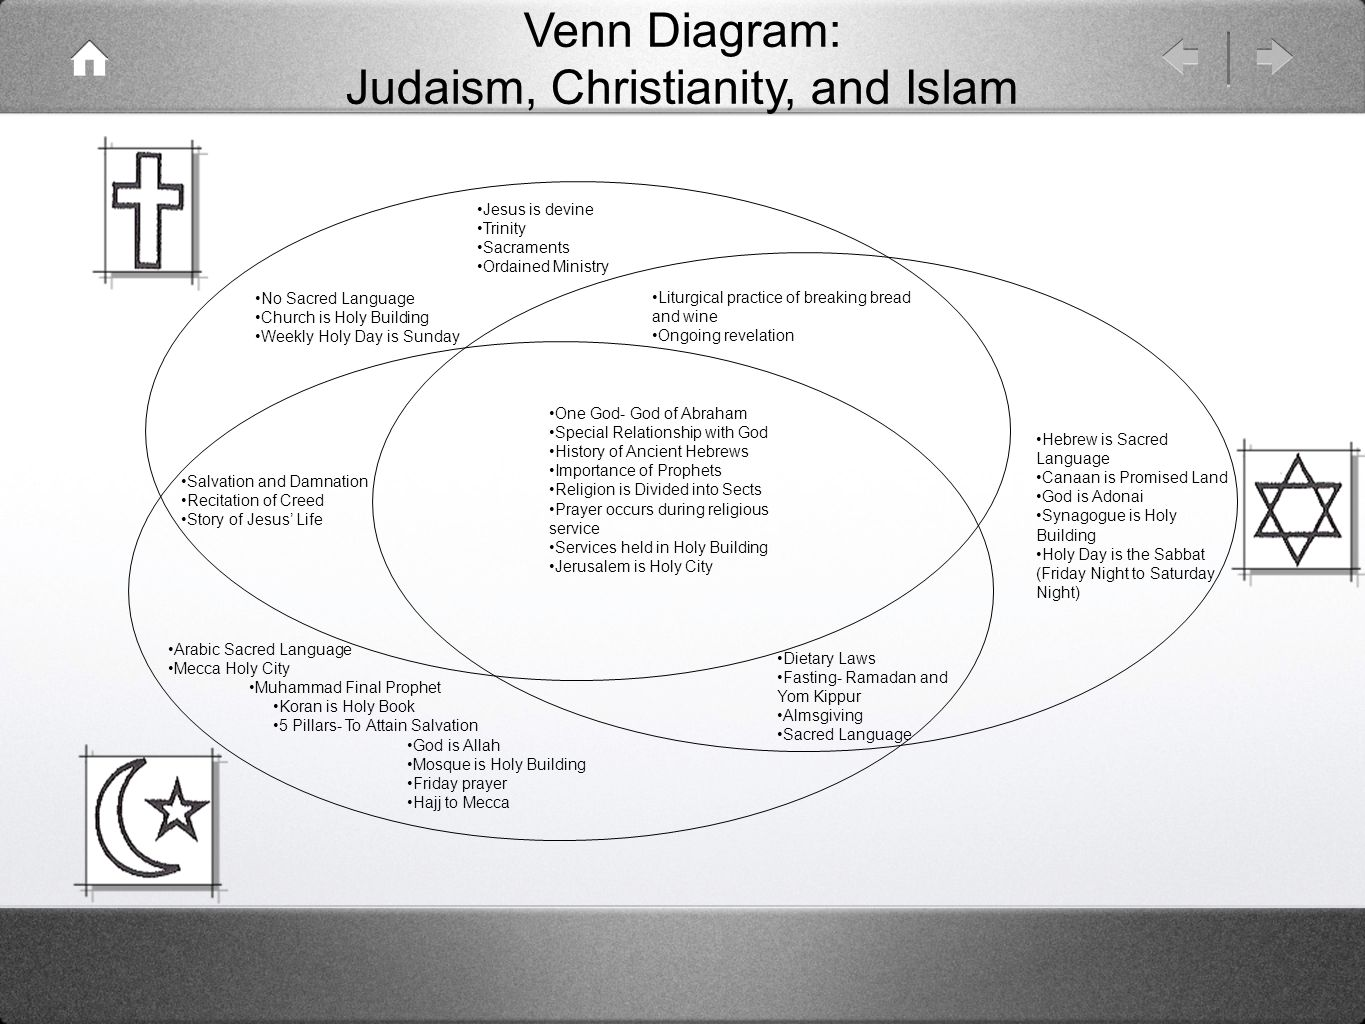 venn diagram judaism christianity and islam 2 judaism christianity